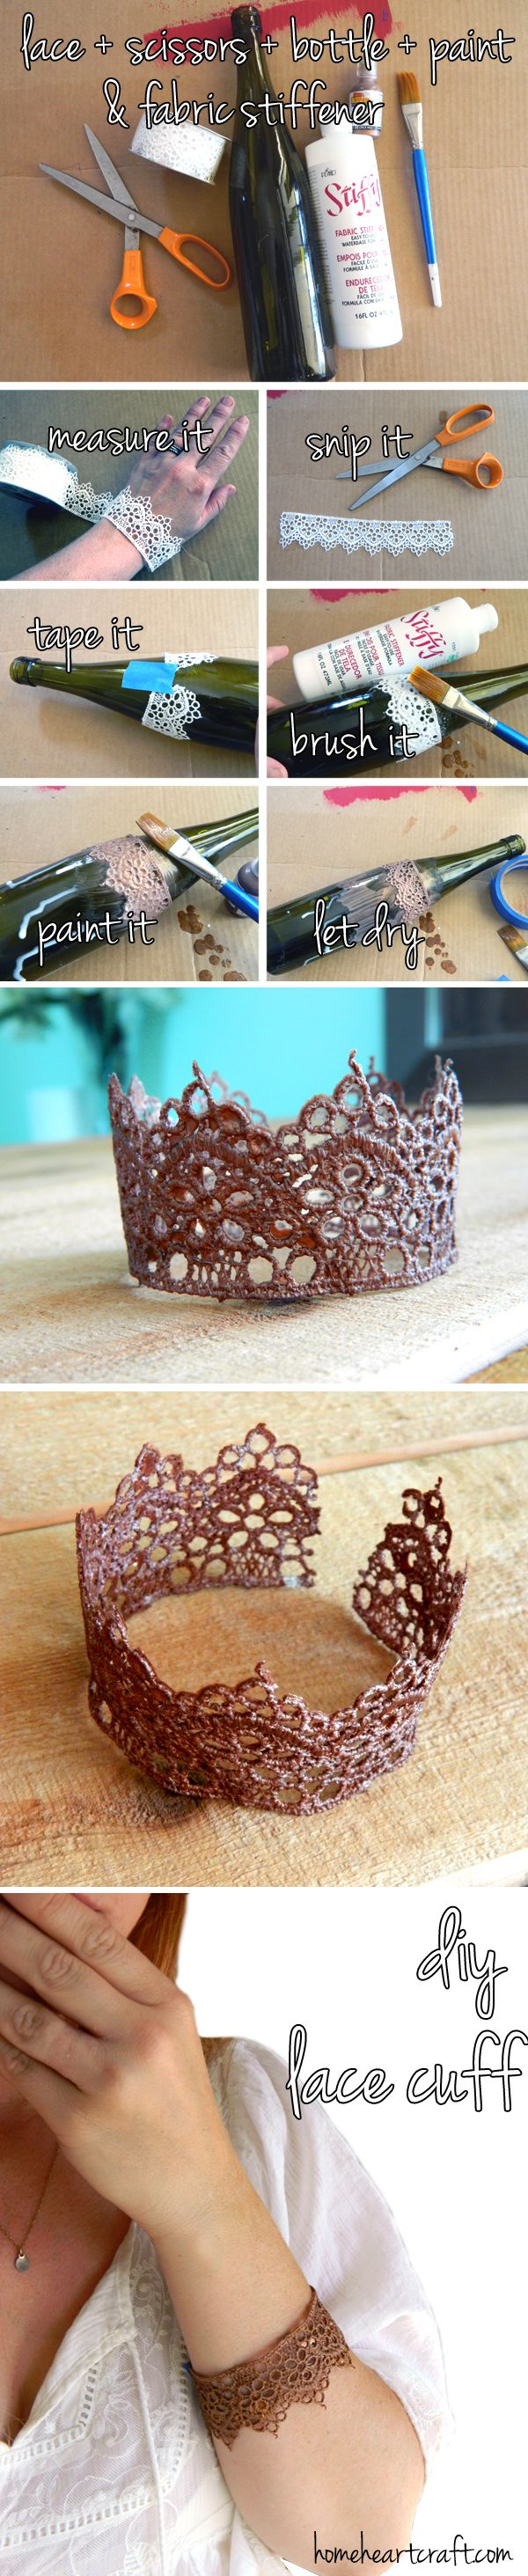 DIY Faux Metal Lace Cuff (I gave the lace a couple of coats of fabric stiffener. Let that set for 15 to 20 minutes then brush on a metallic paint. Wipe off any excess paint so that the lace pattern is clear. Set to dry for a couple of hours and then gently remove from the bottle. If the bracelet is still to flexible give it another coat with the fabric stiffener.)